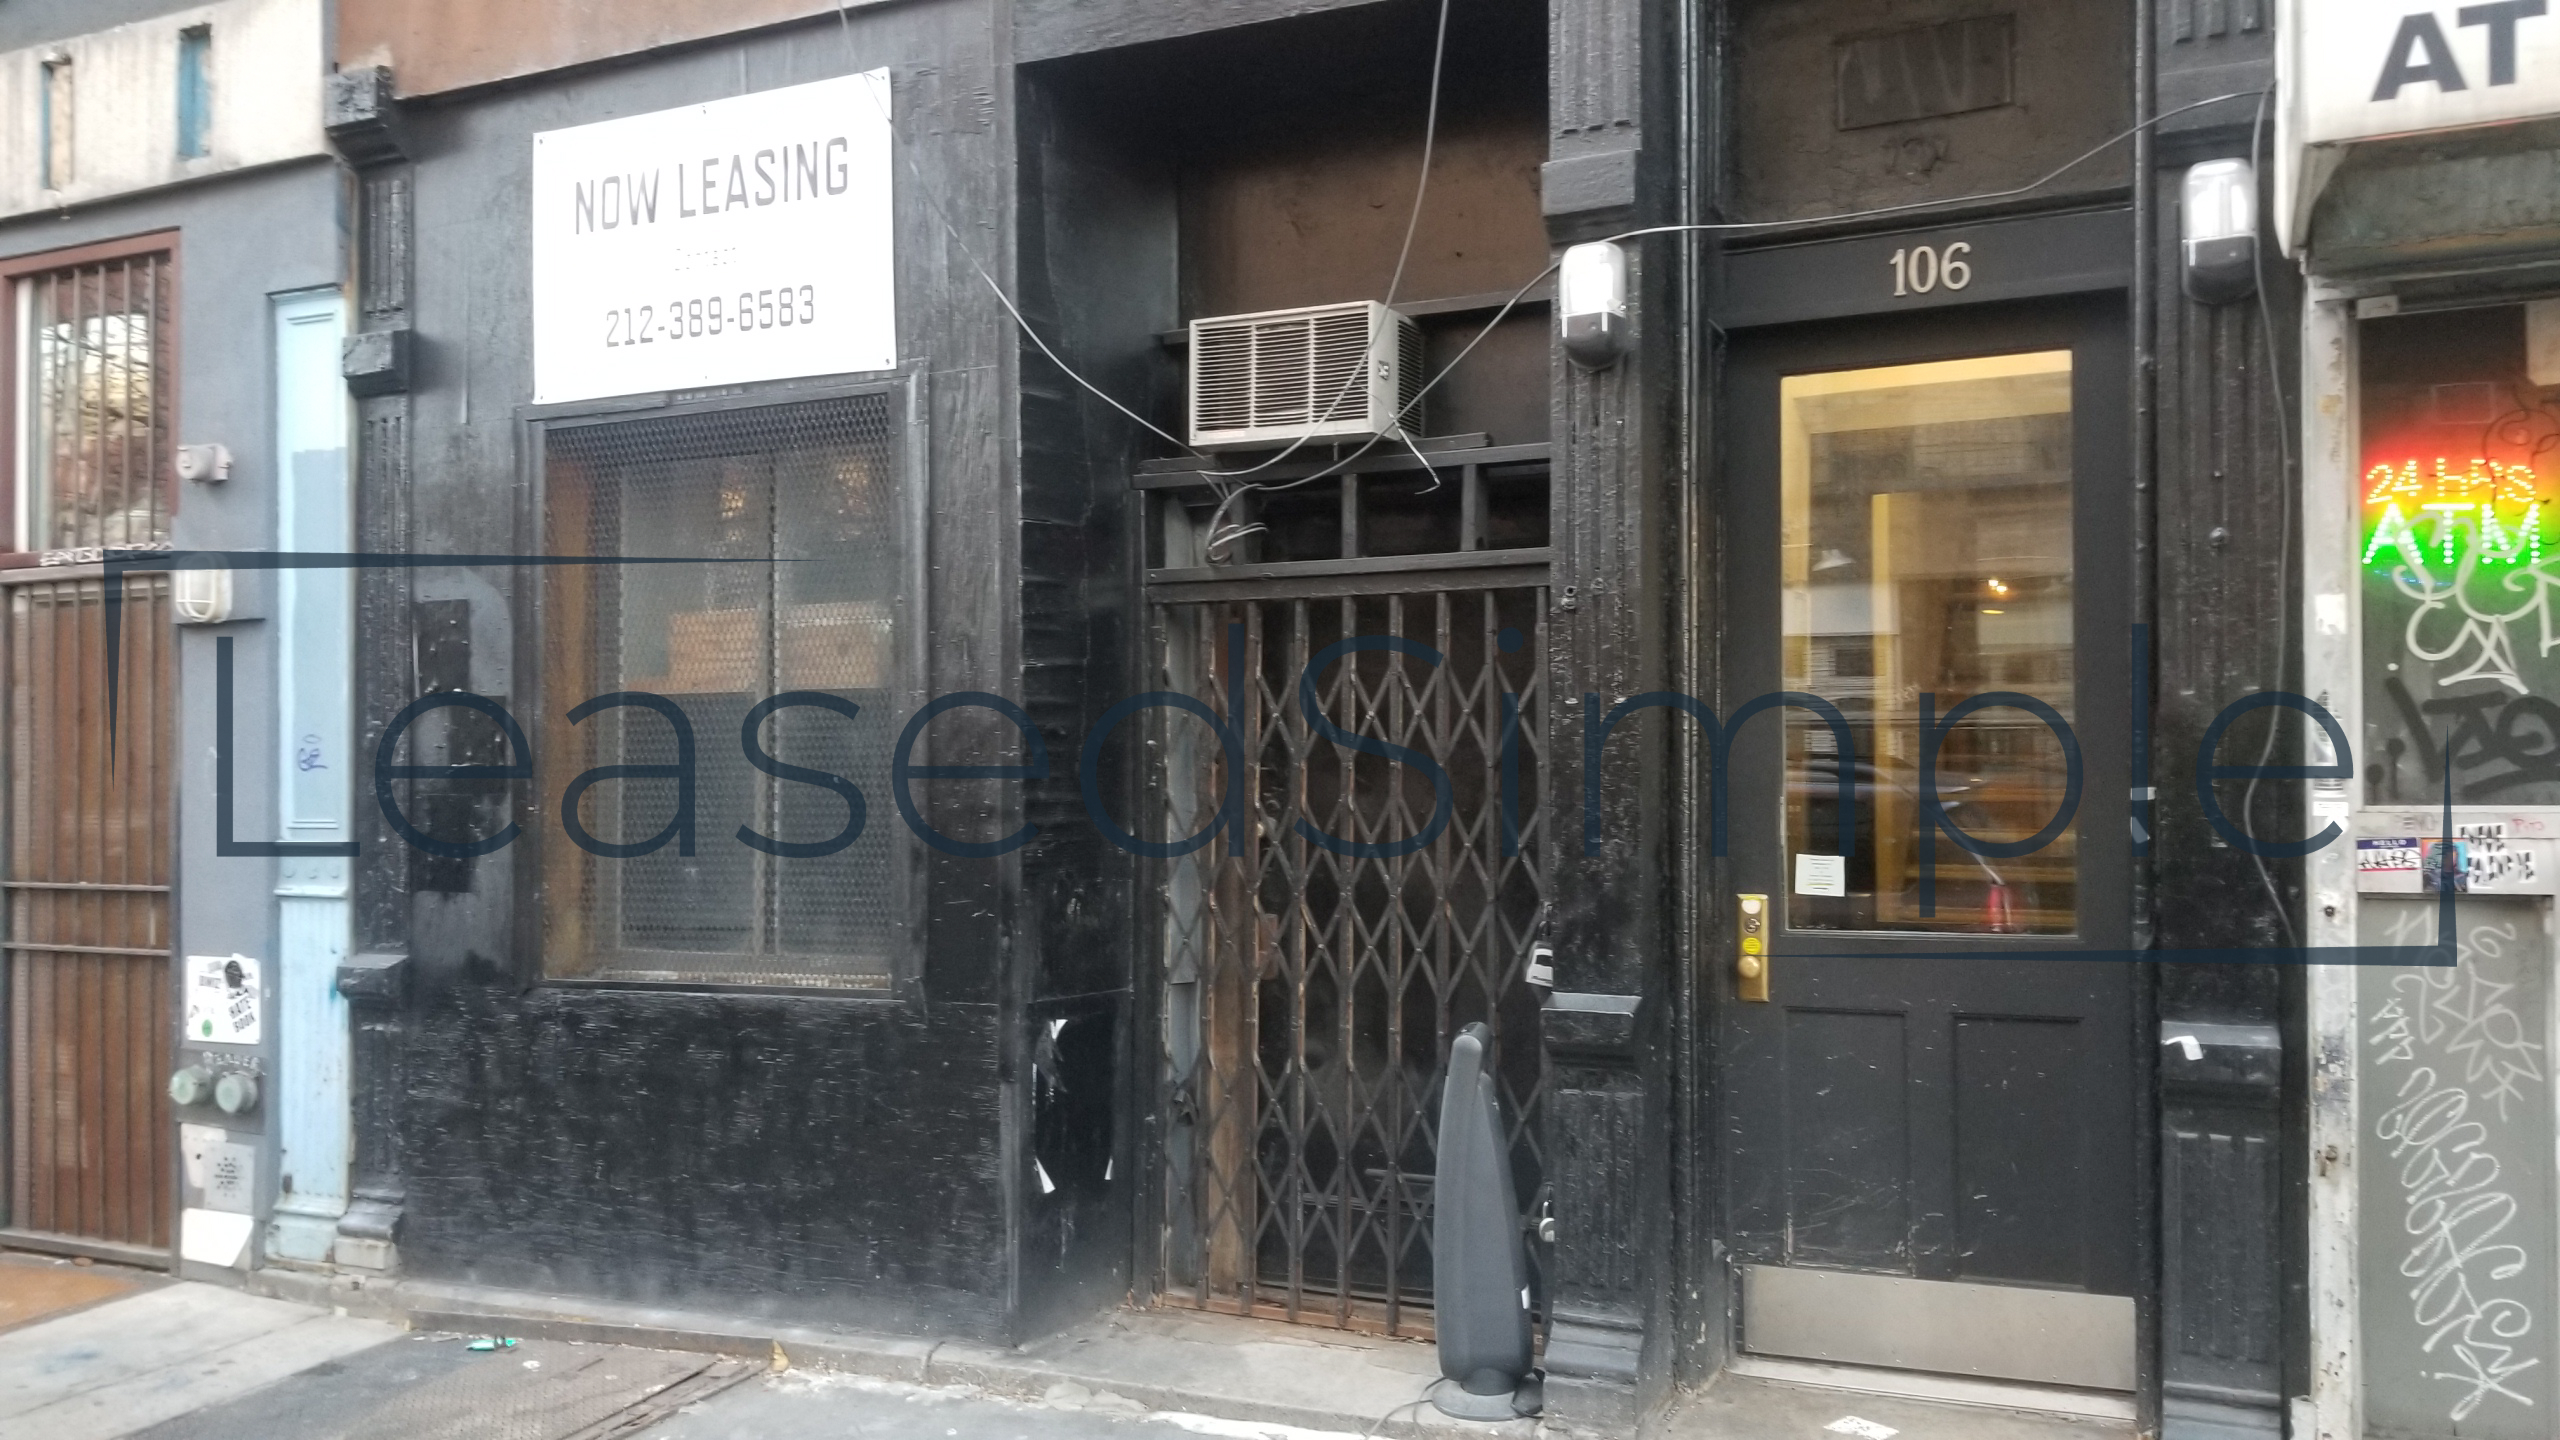 Retail Space For Lease By Owner